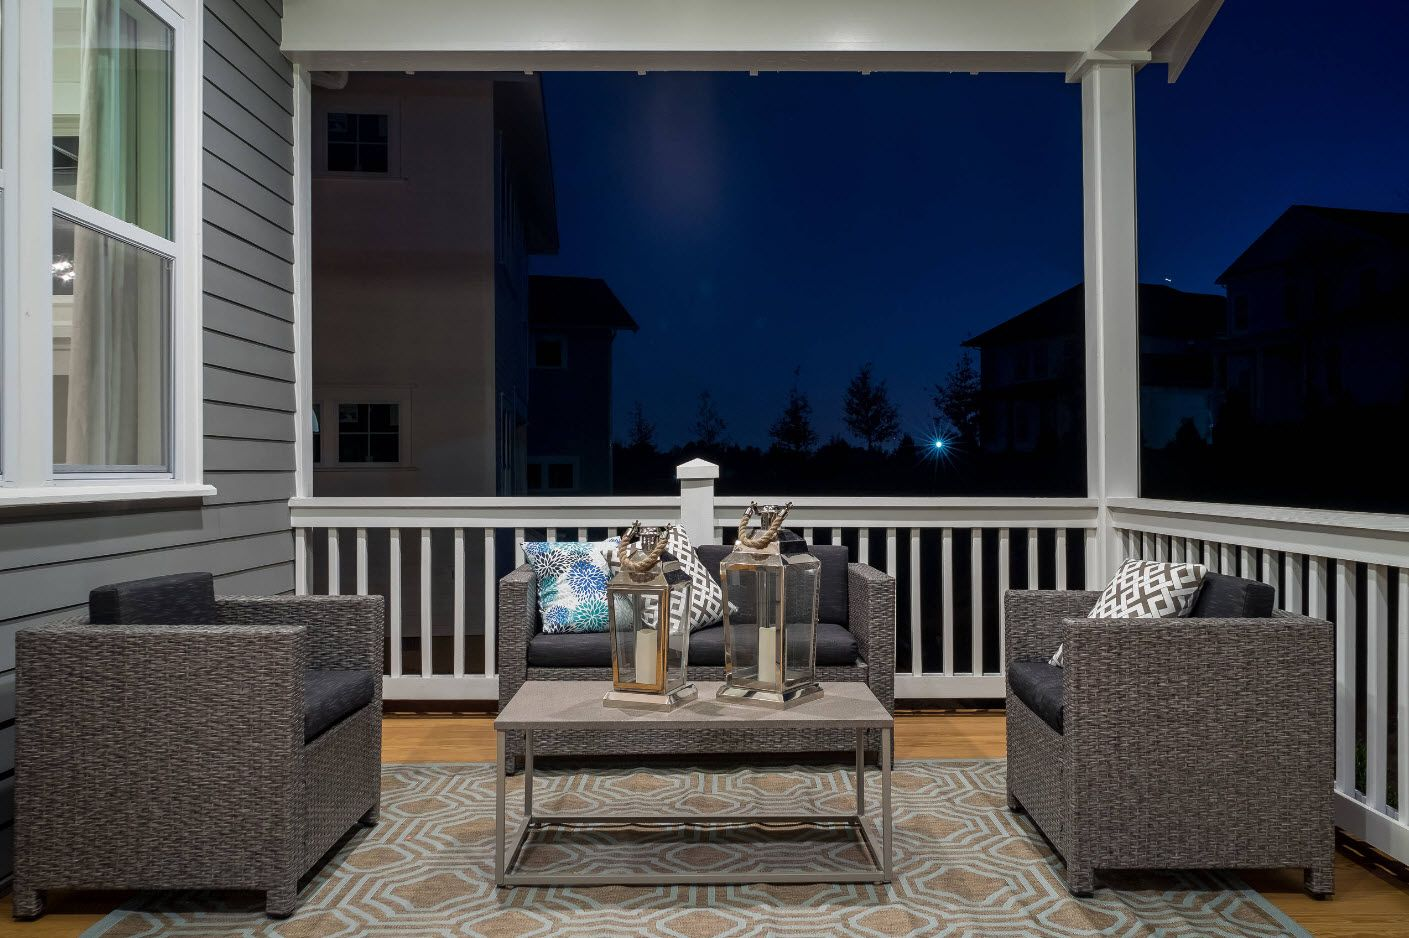 Nice designed patio for two with a coffe table at the front door of the private house